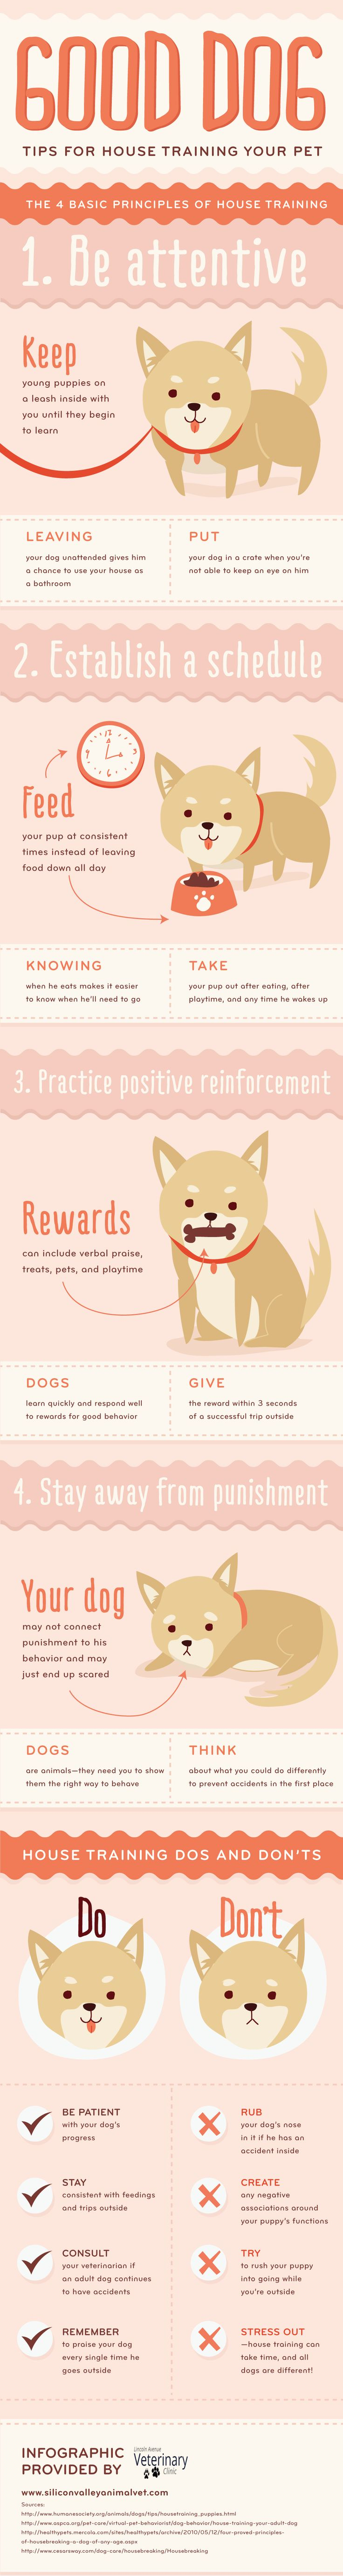 Good-Dog-Tips-For-House-Training-Your-Pet-Infographic